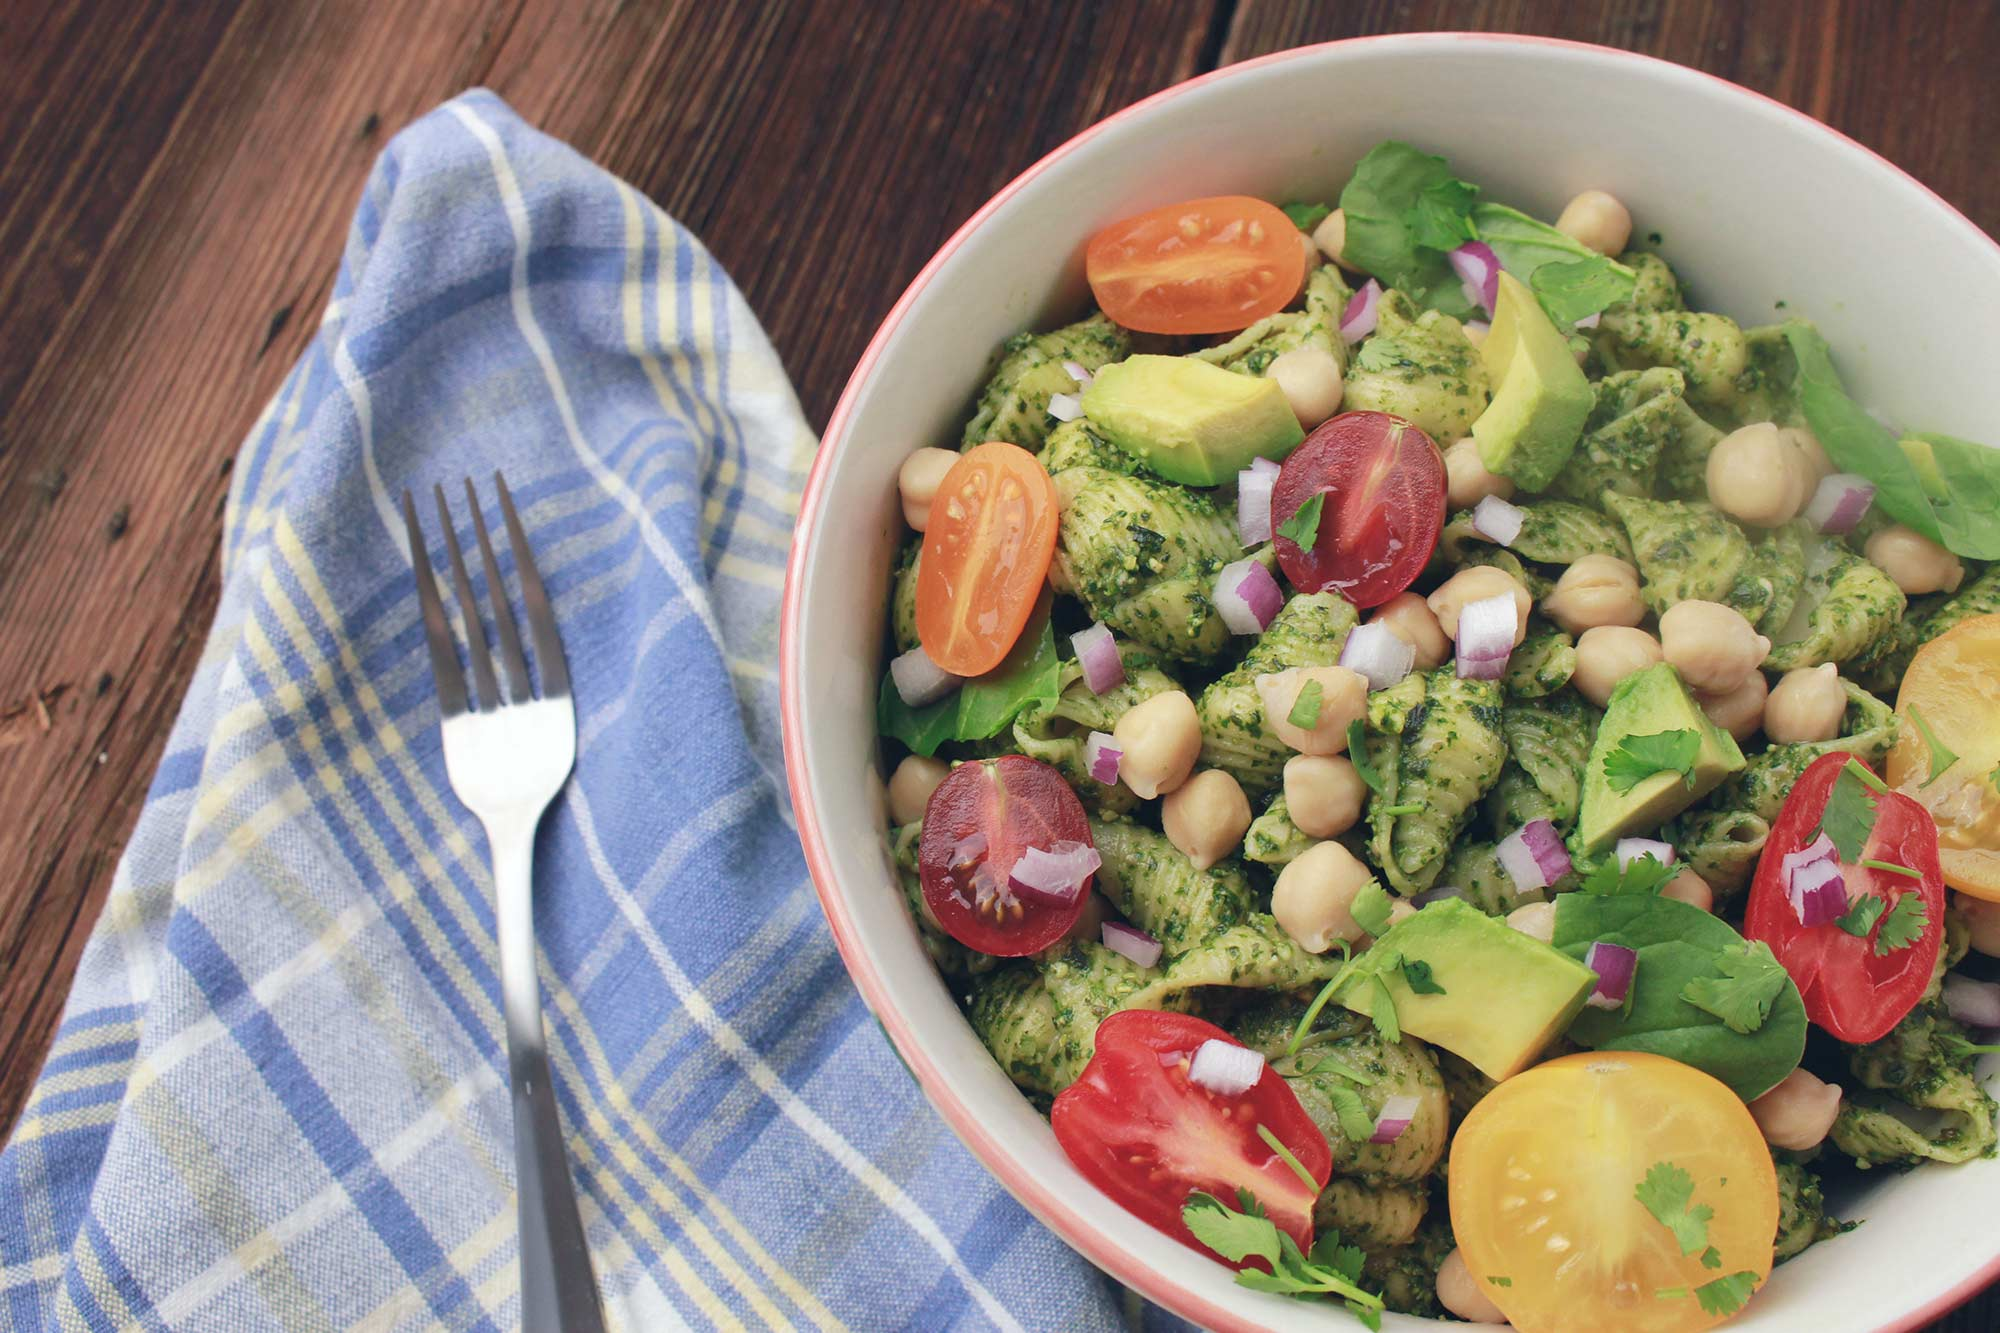 Pesto Pasta Salad with Cherry Tomatoes, Avocado & Chickpeas